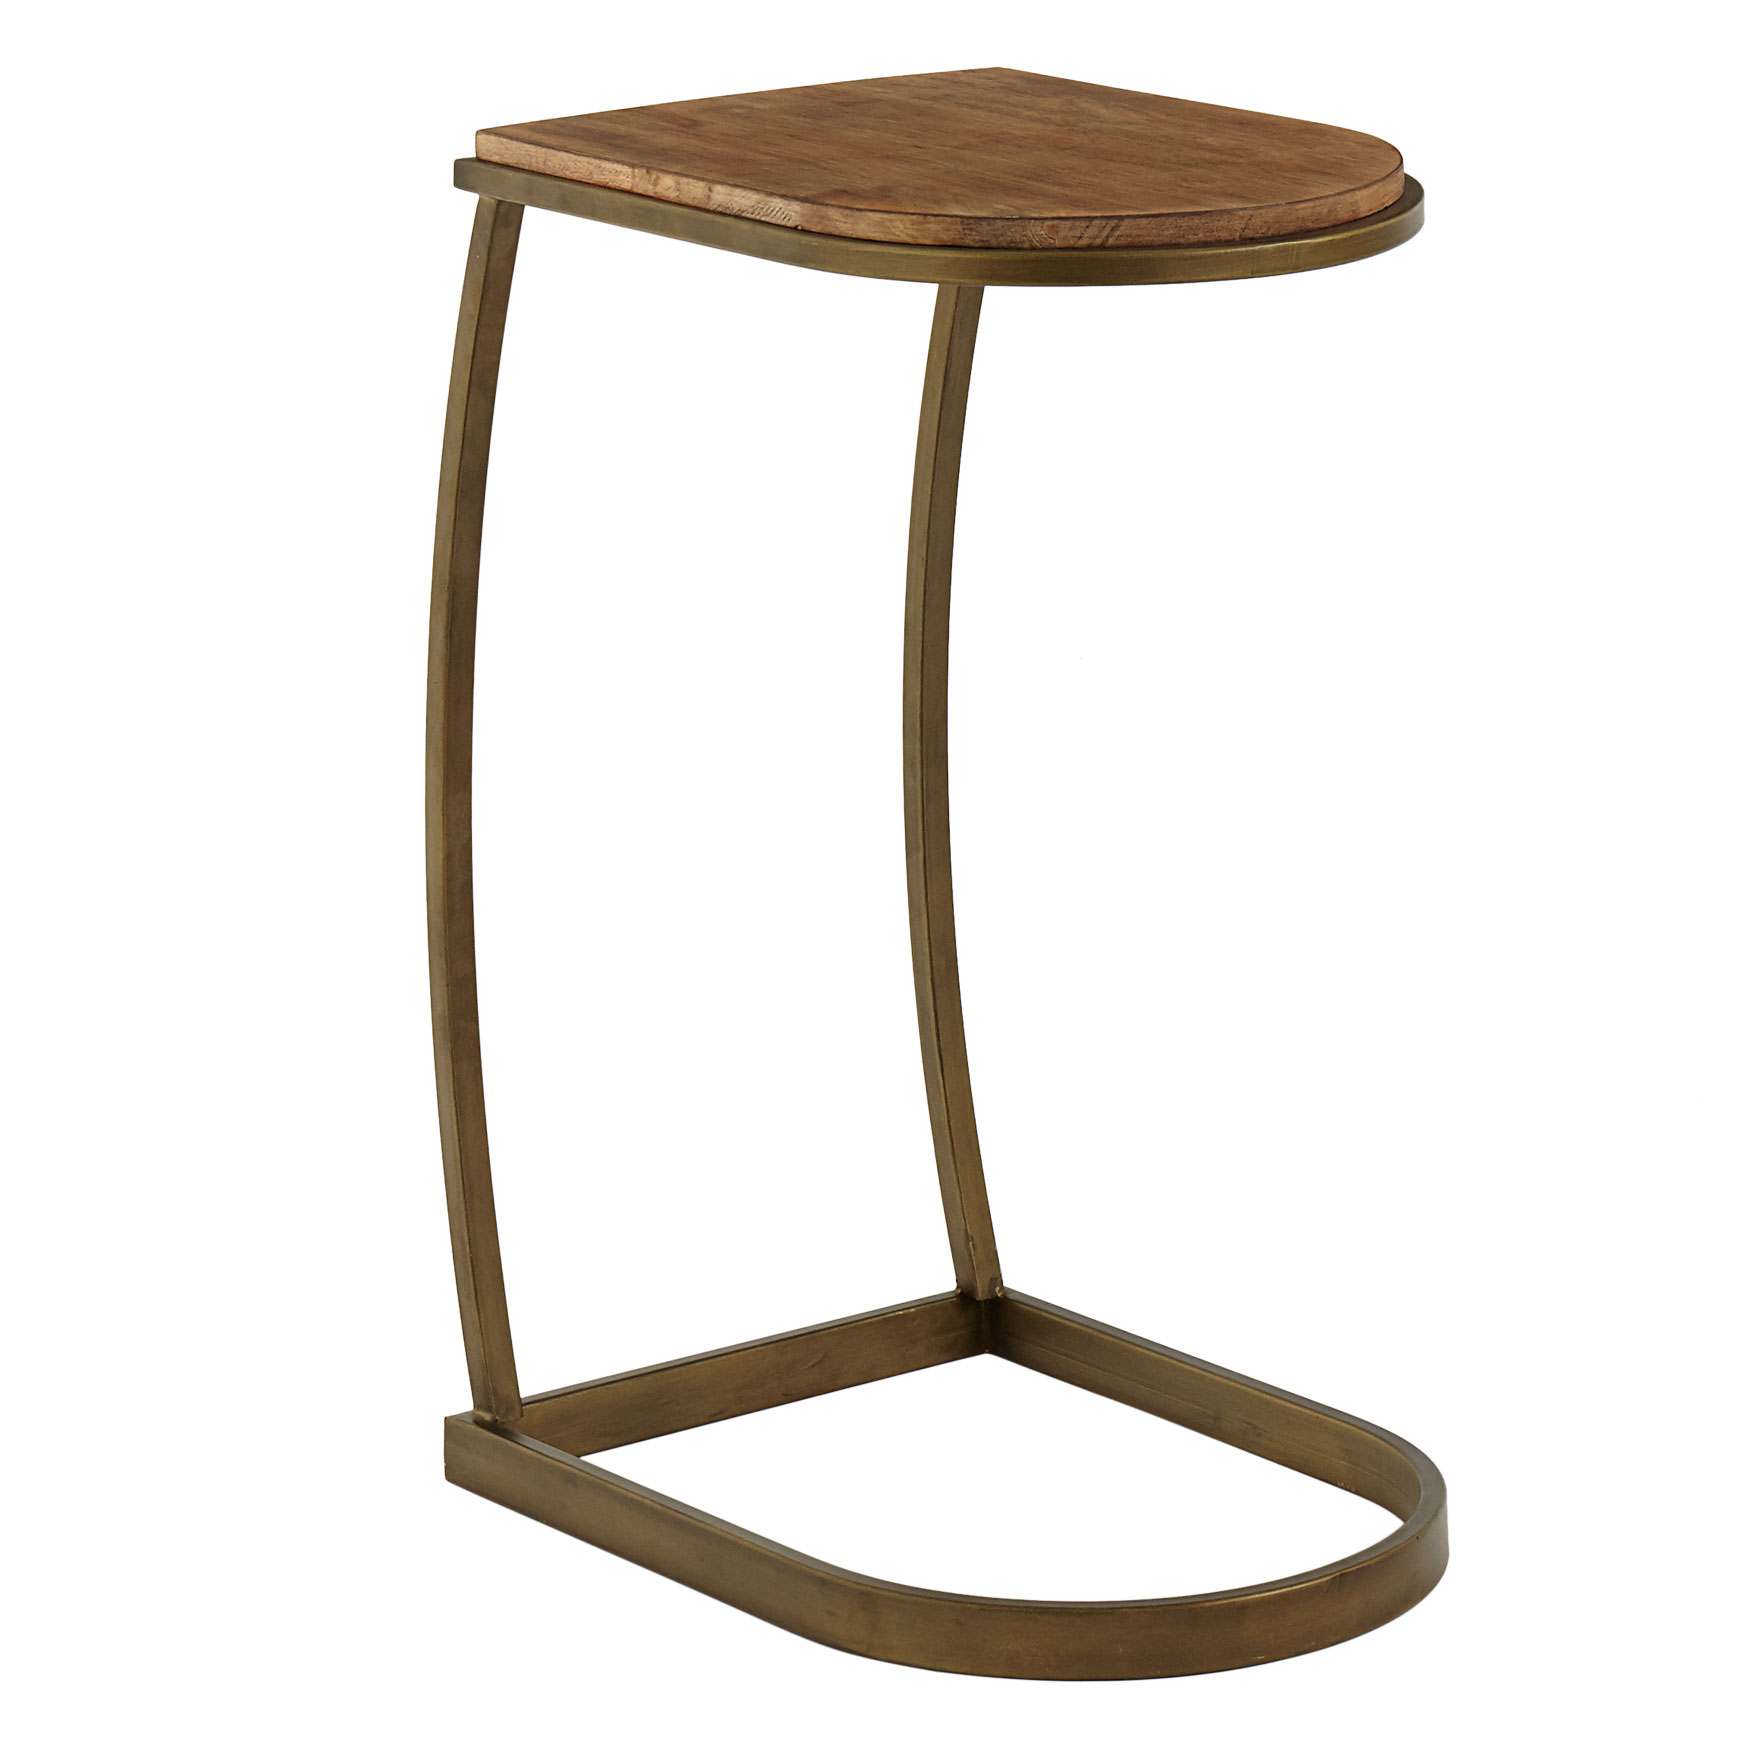 Curved Sofa Side Table , ANTIQUE GOLD NATURAL